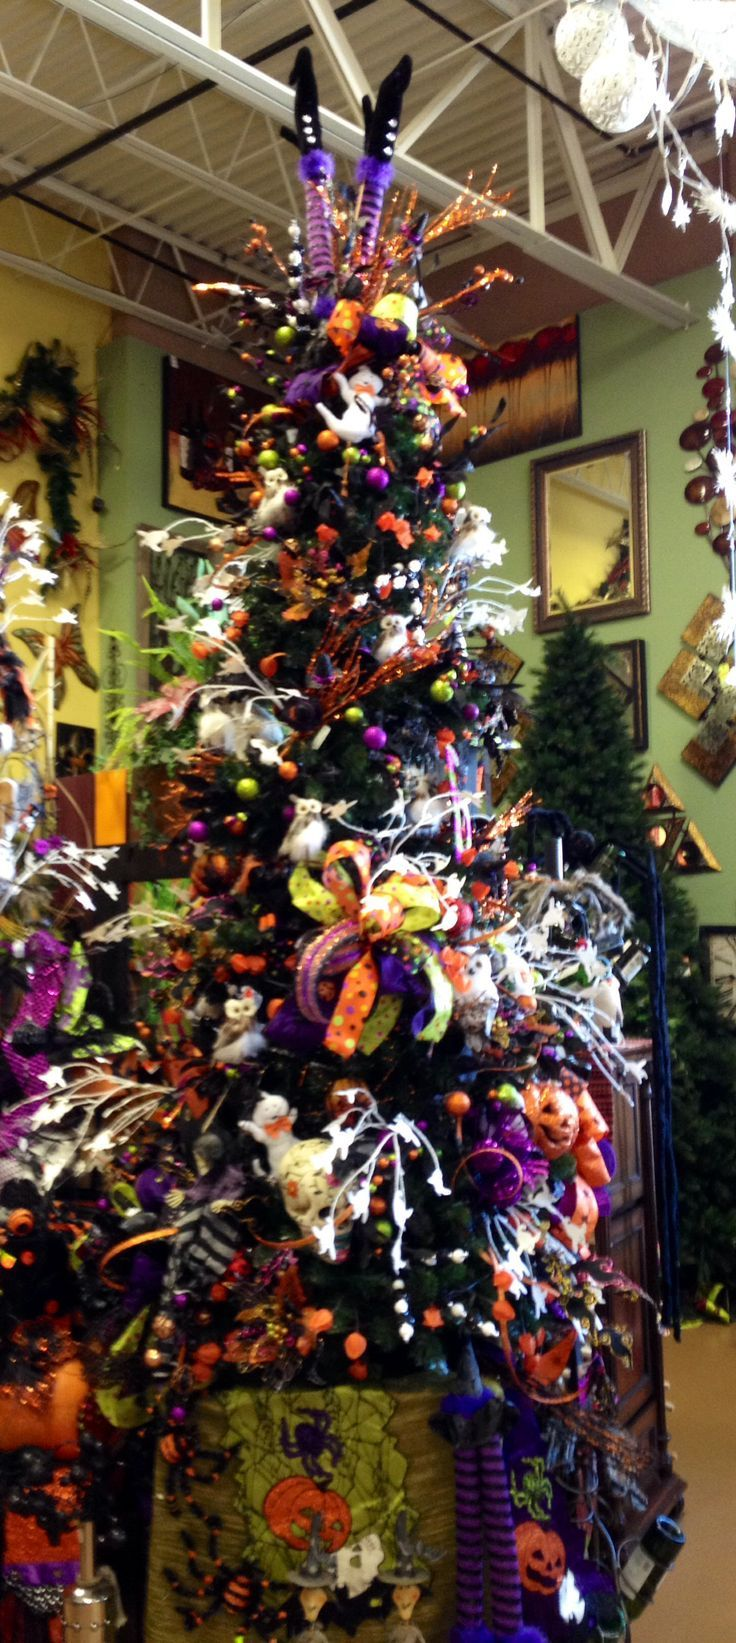 155 best images about halloween trees and ornaments on - Decoration d halloween ...